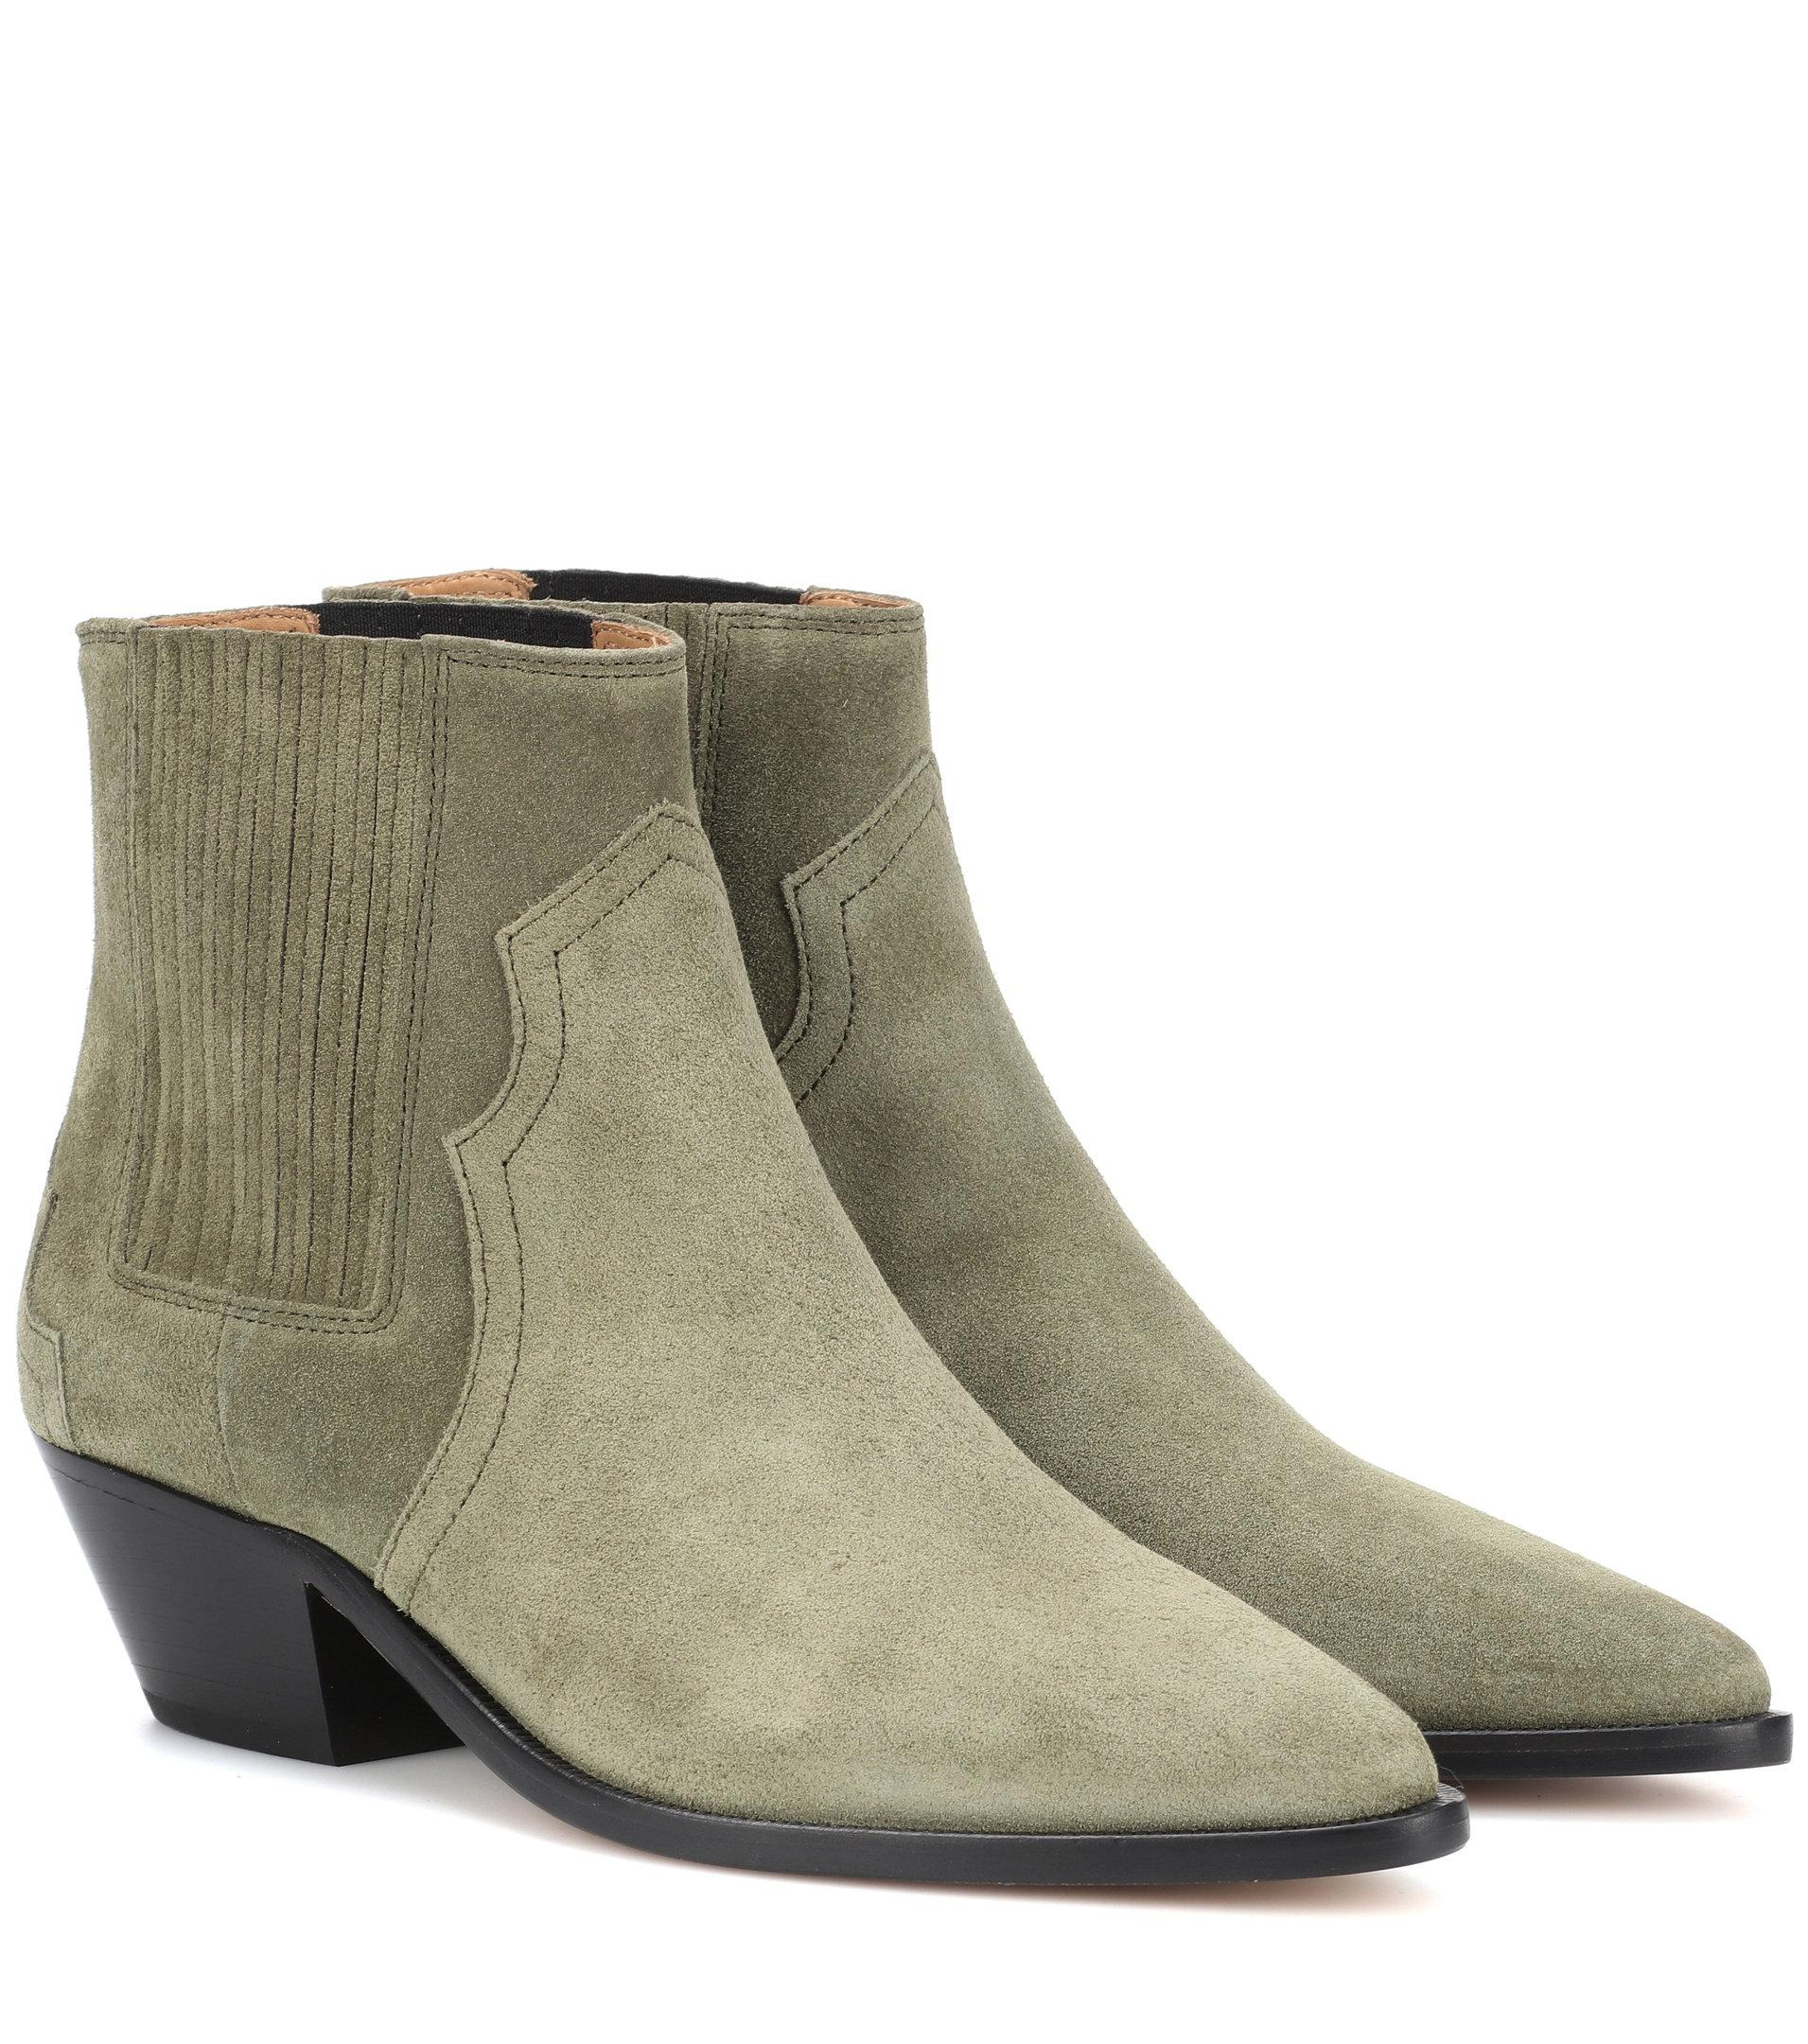 Isabel Marant Derst suede ankle boots LG4gWzye5